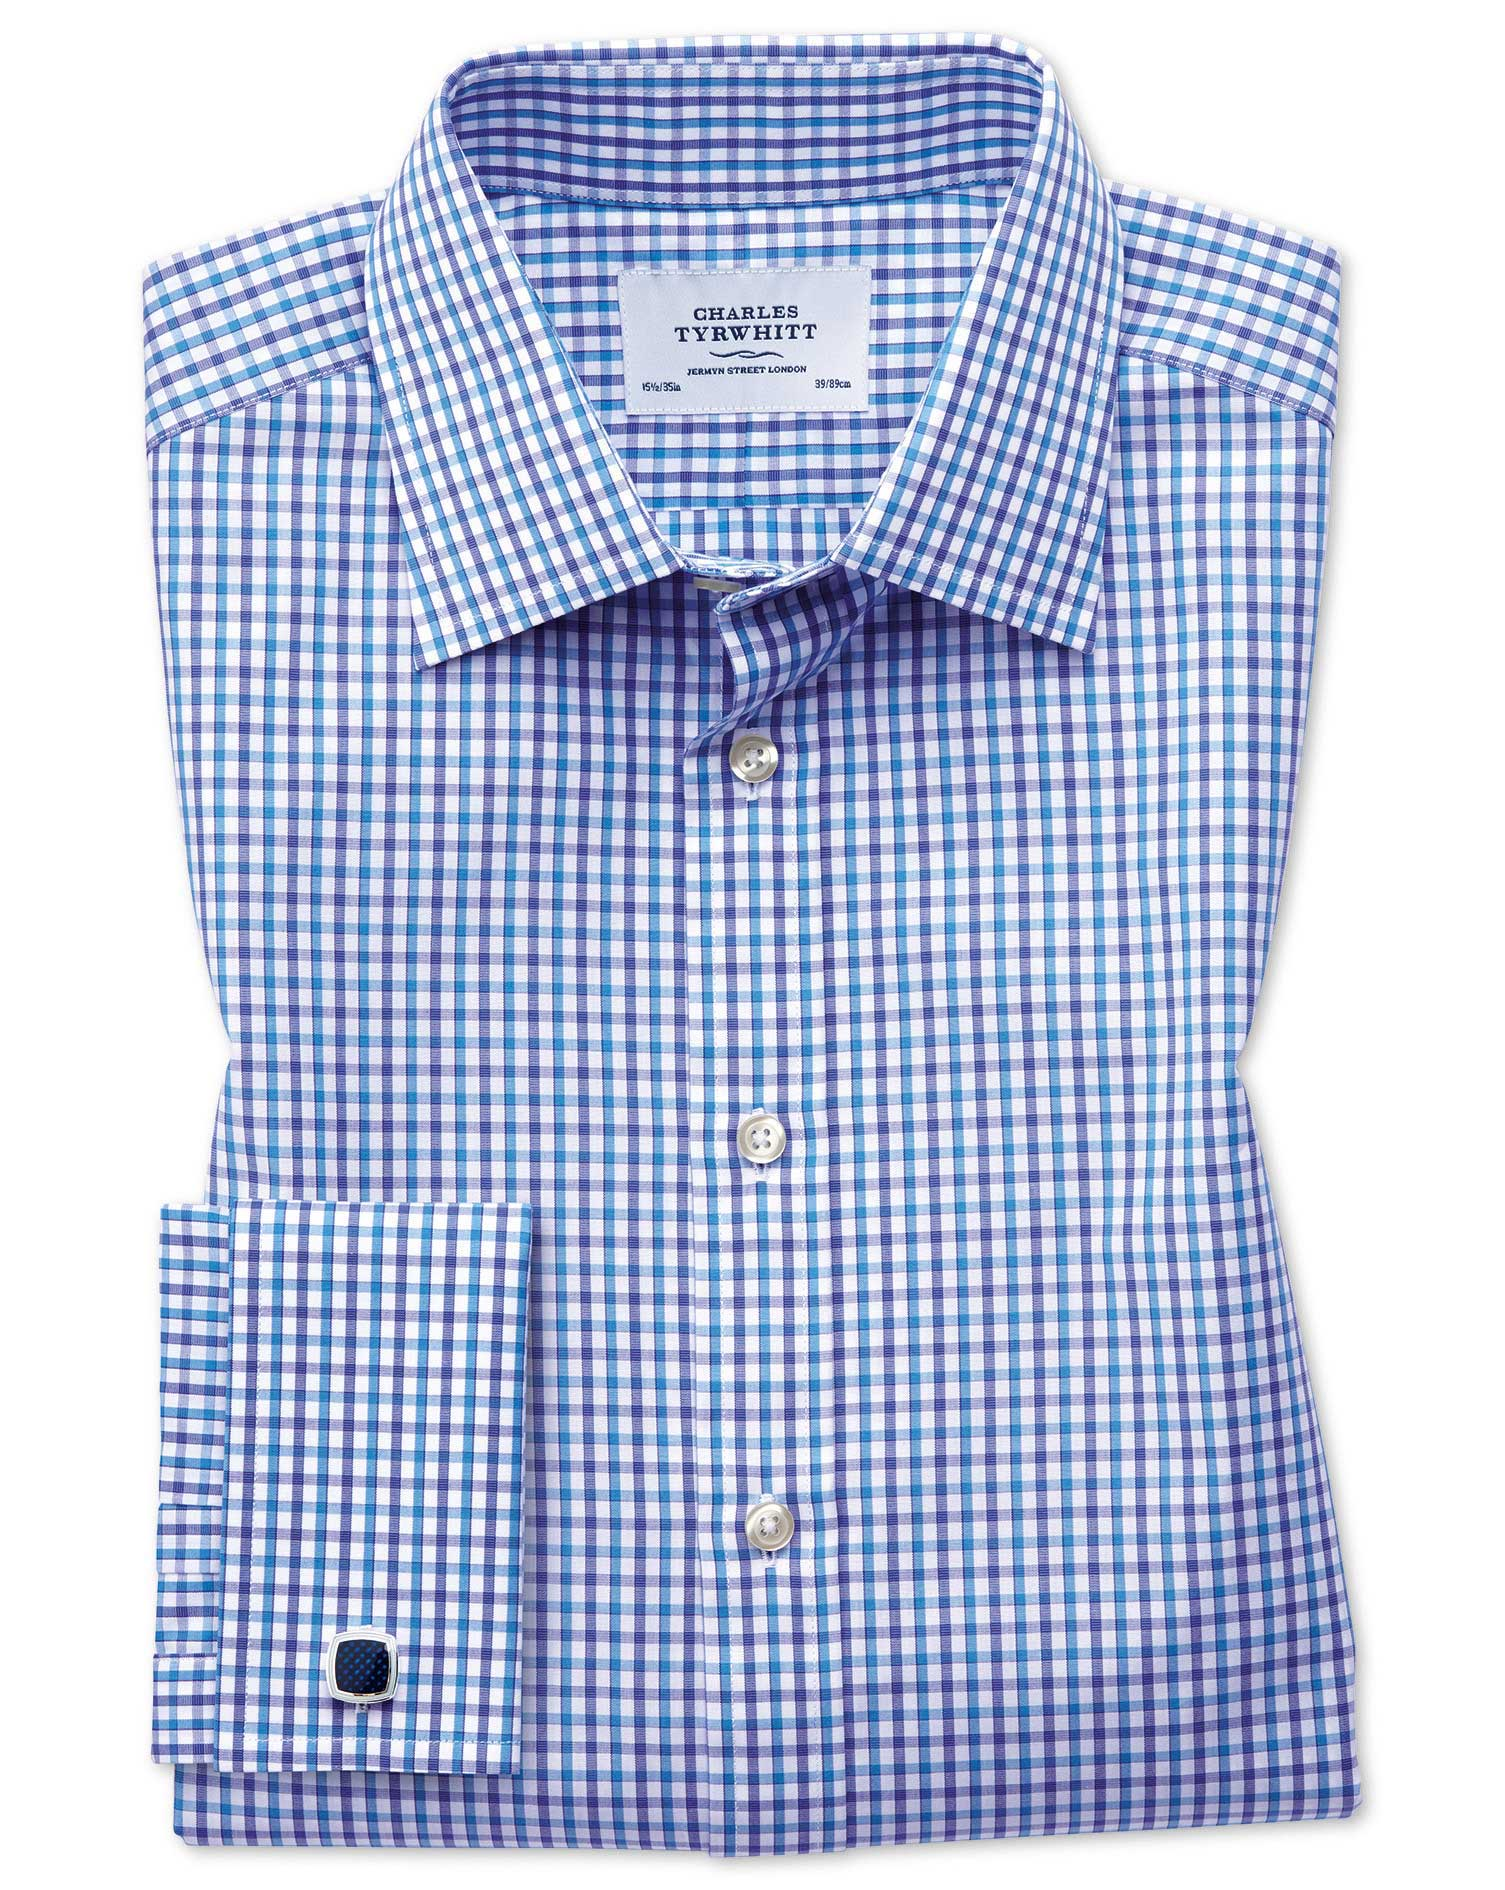 Slim Fit Two Colour Check Blue Cotton Formal Shirt Single Cuff Size 15.5/35 by Charles Tyrwhitt